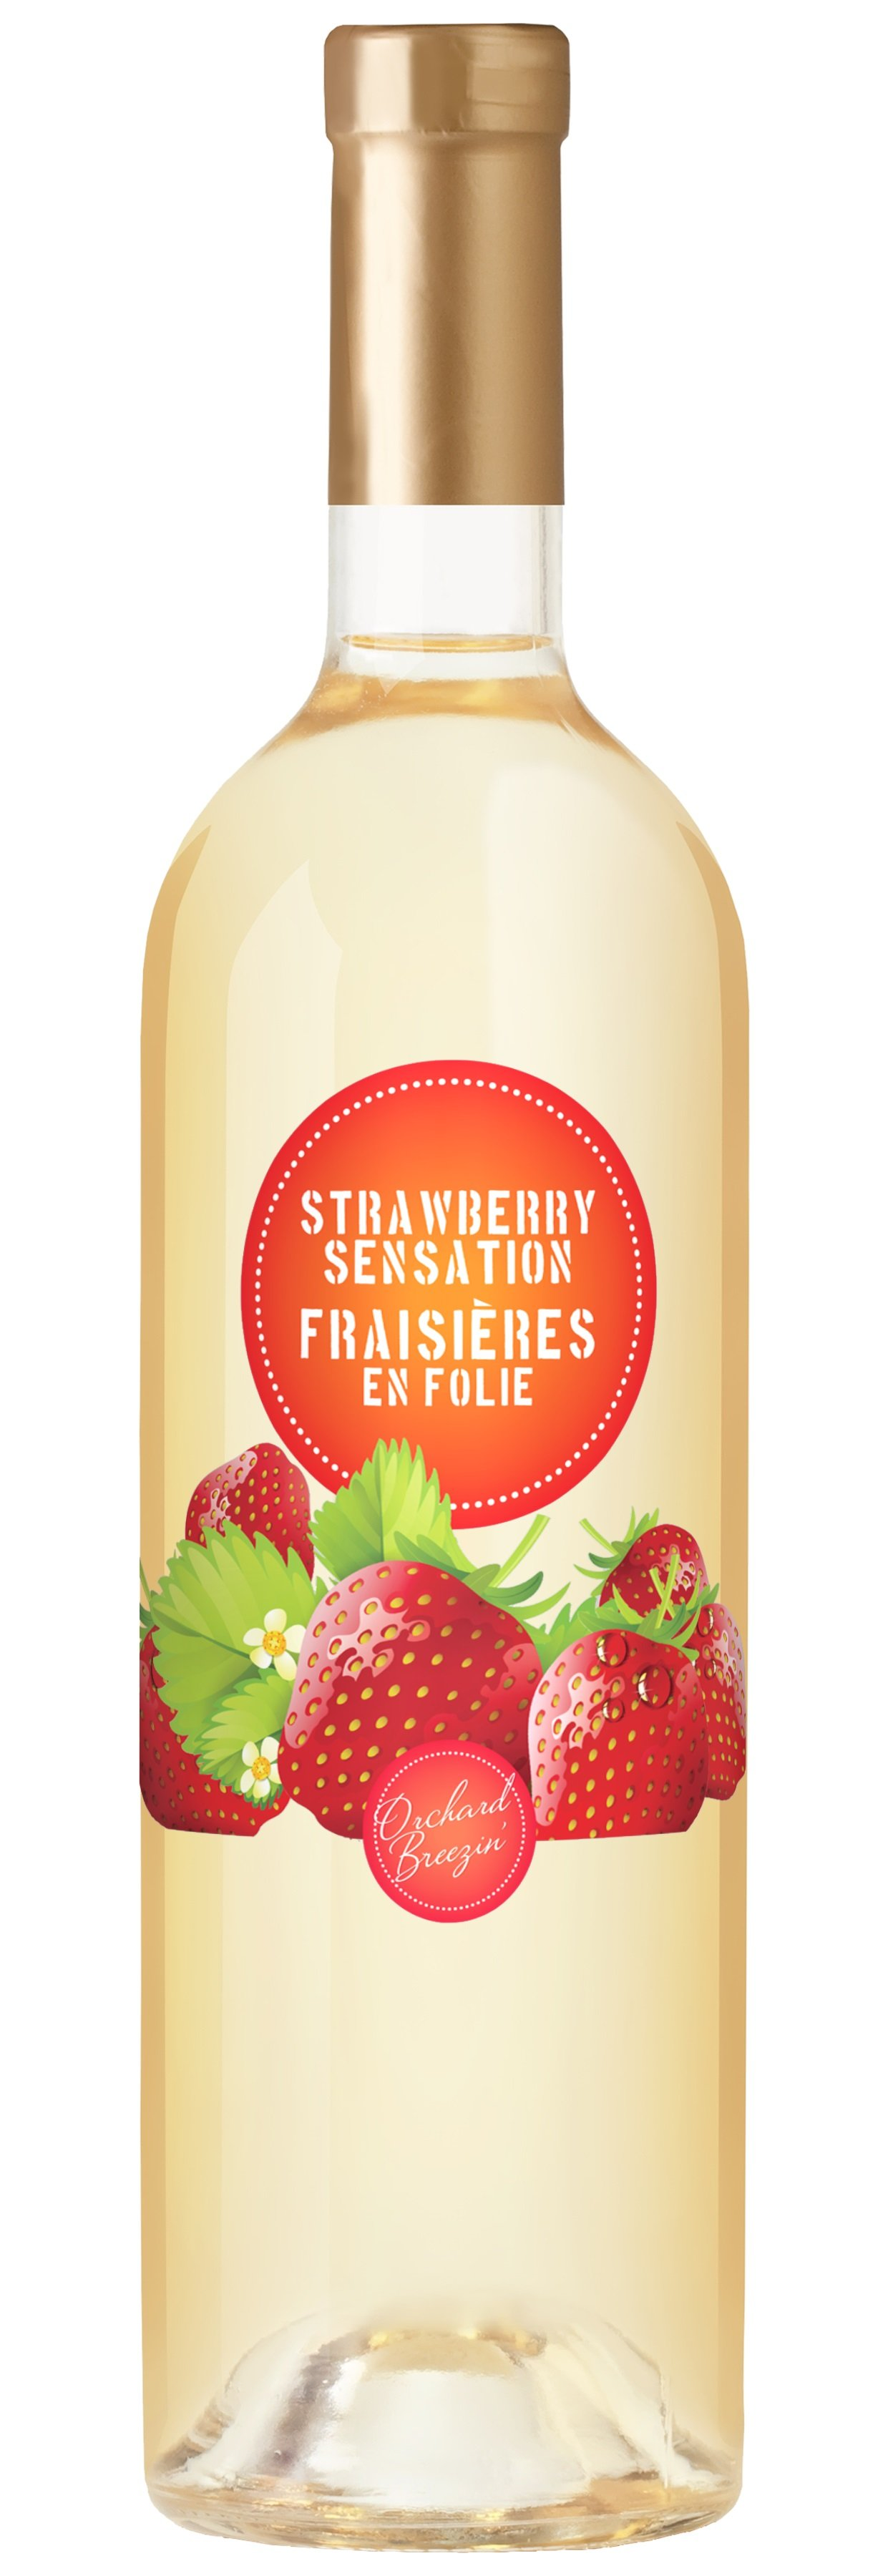 https://0901.nccdn.net/4_2/000/000/057/fca/OB_Bottle_StrawberrySensation.jpg